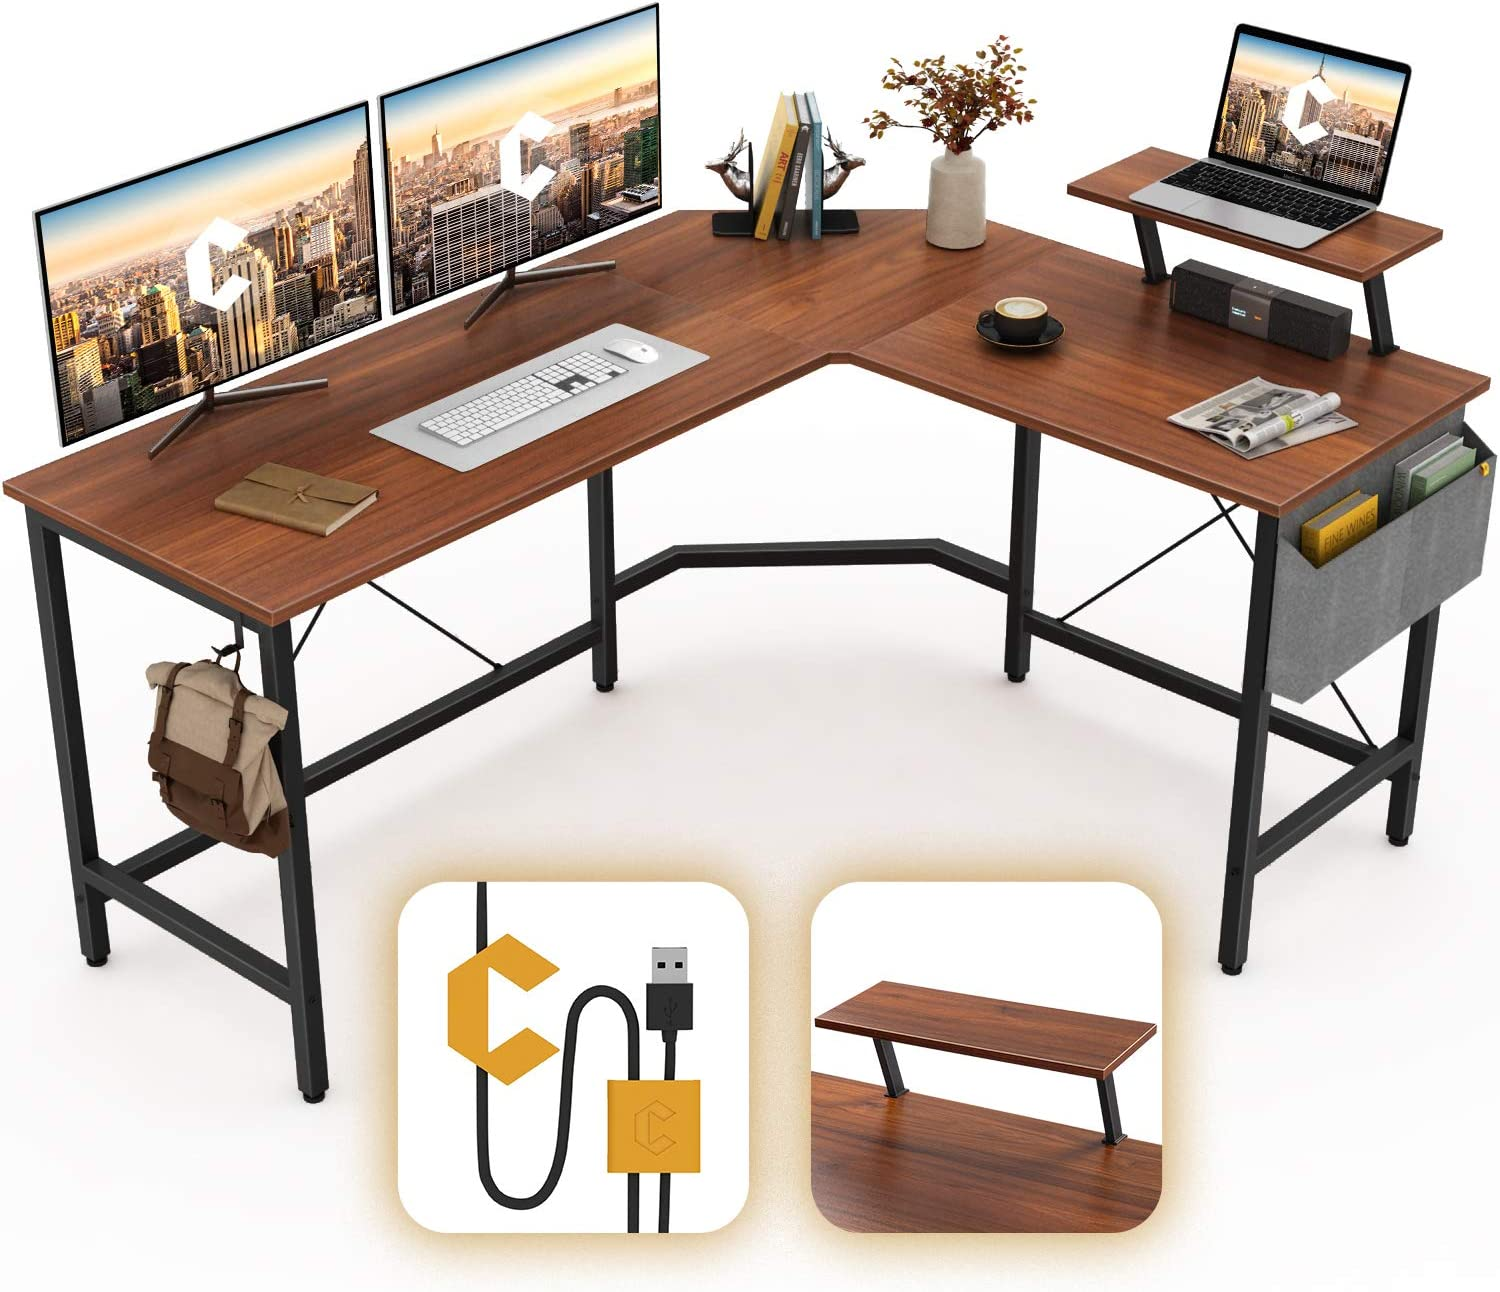 Cubiker Modern L-Shaped Computer Office Desk, Corner Gaming Desk with Monitor Stand, Home Study Writing Table Workstation for Small Spaces, Espresso